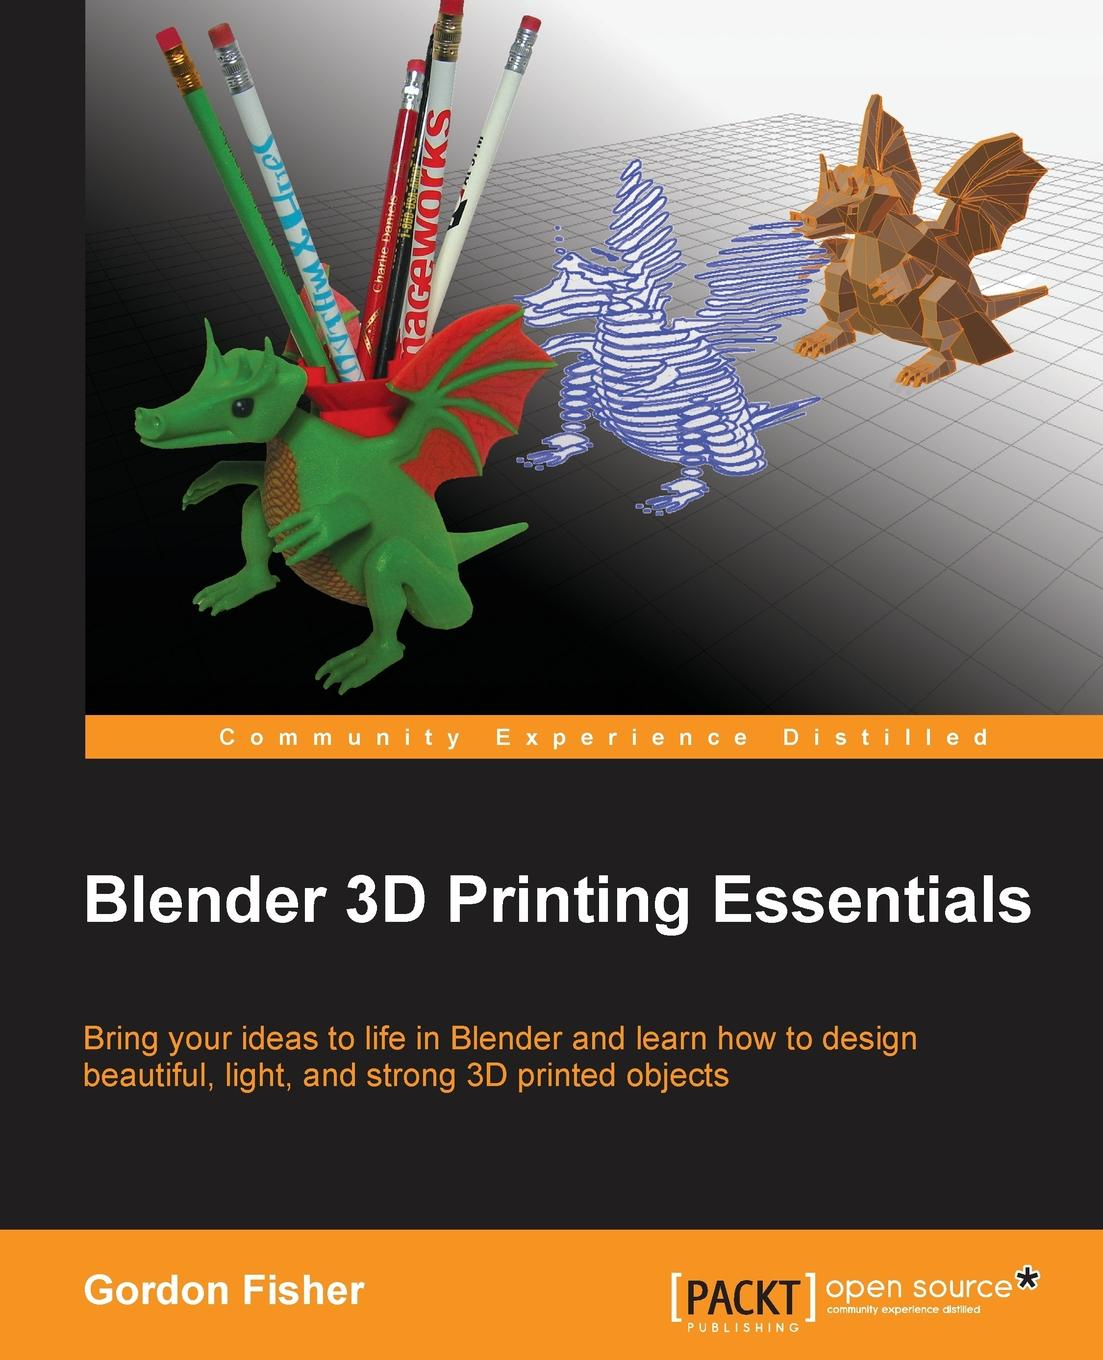 Gordon Fisher Blender 3D Printing Essentials 2012 full color 180 pages printing catalog of chef essentials